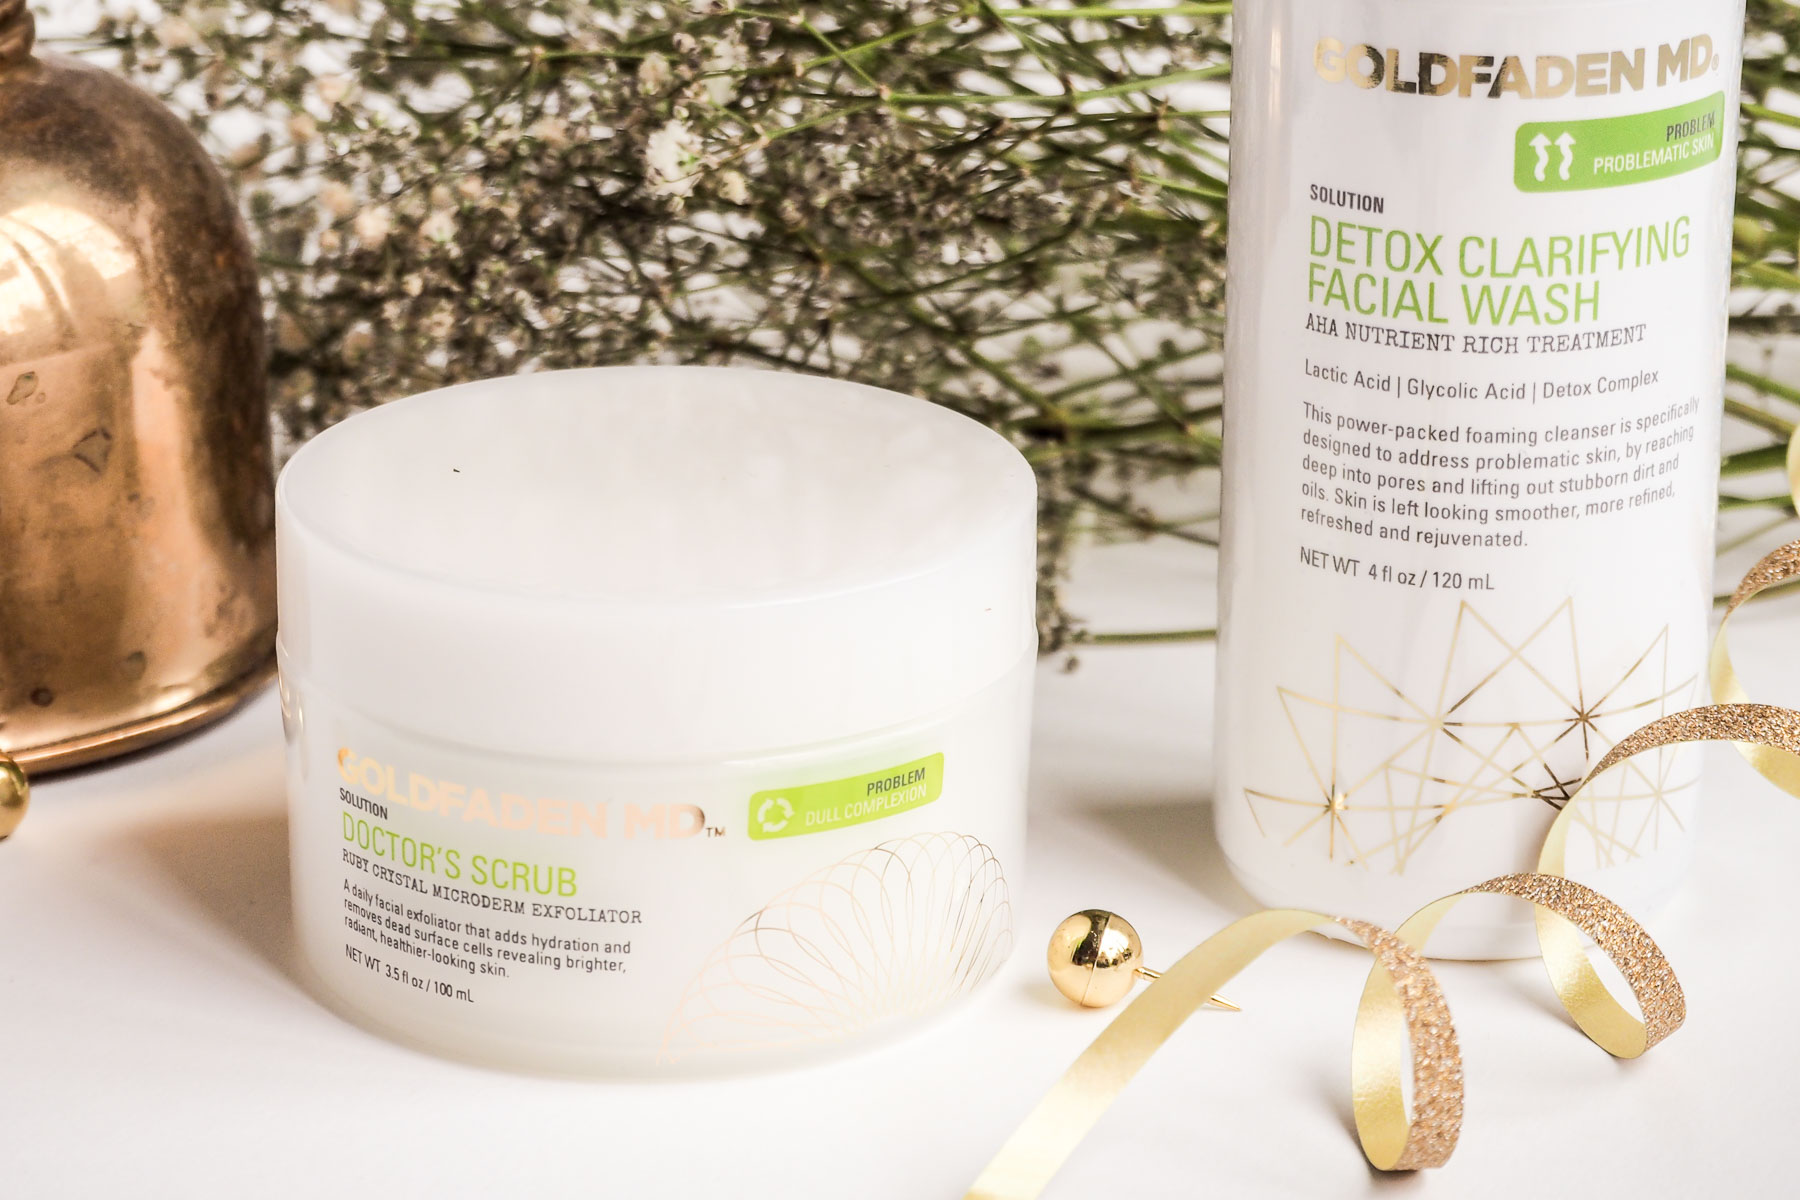 Beauty Review: Goldfaden MD Doctor's Scrub and Detox Clarifying Facial Wash